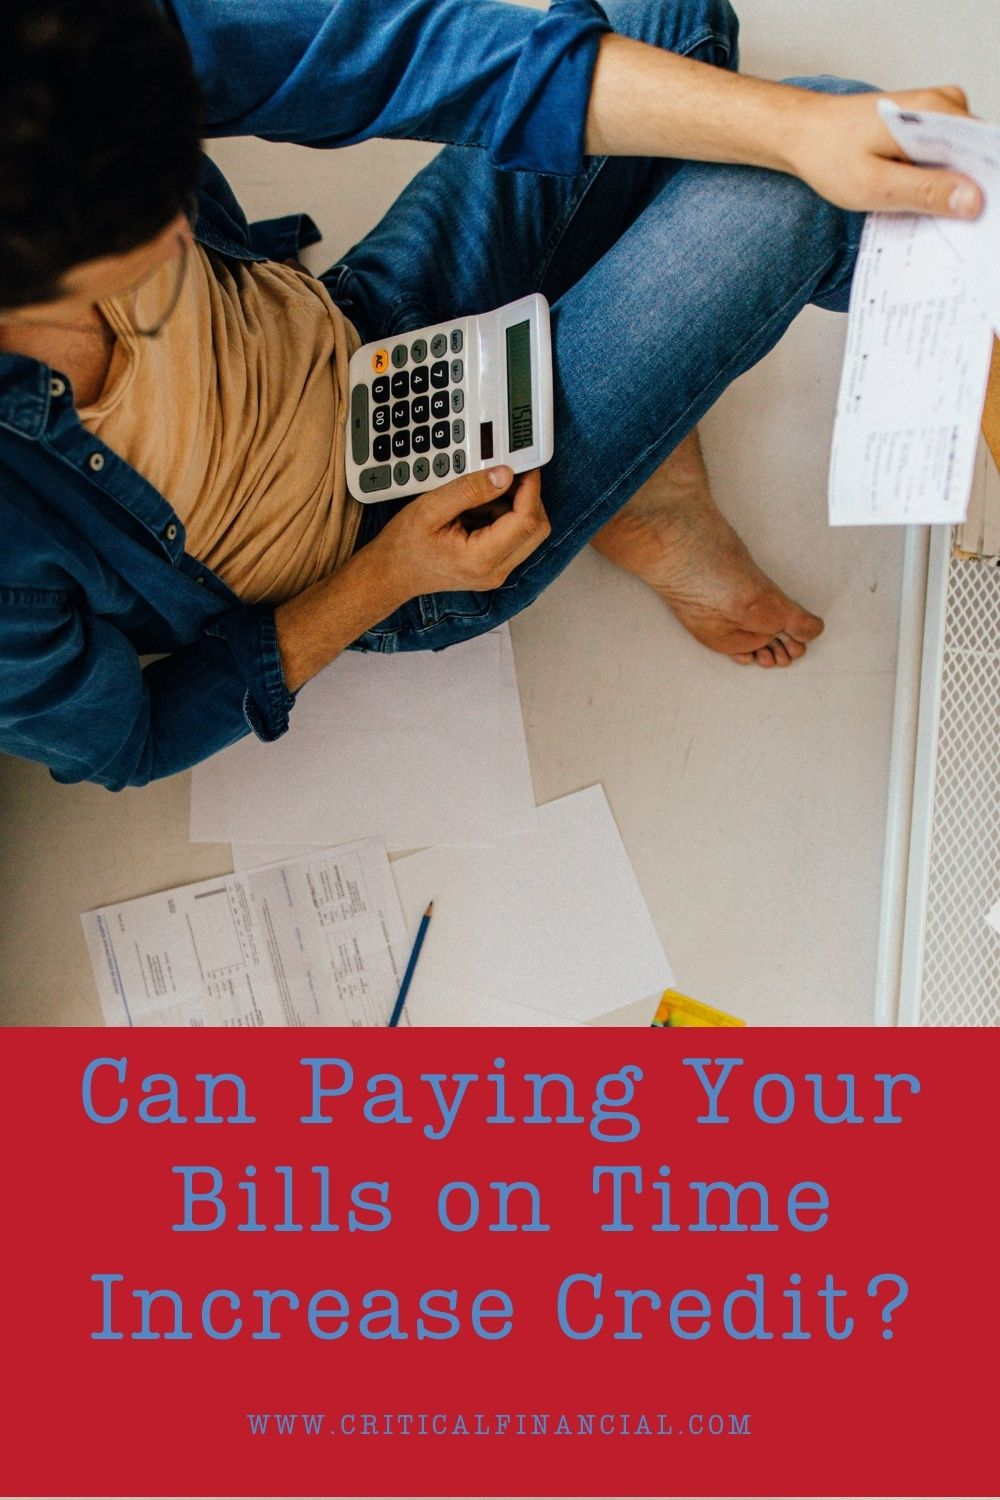 Can Paying Your Bills on Time Increase Credit